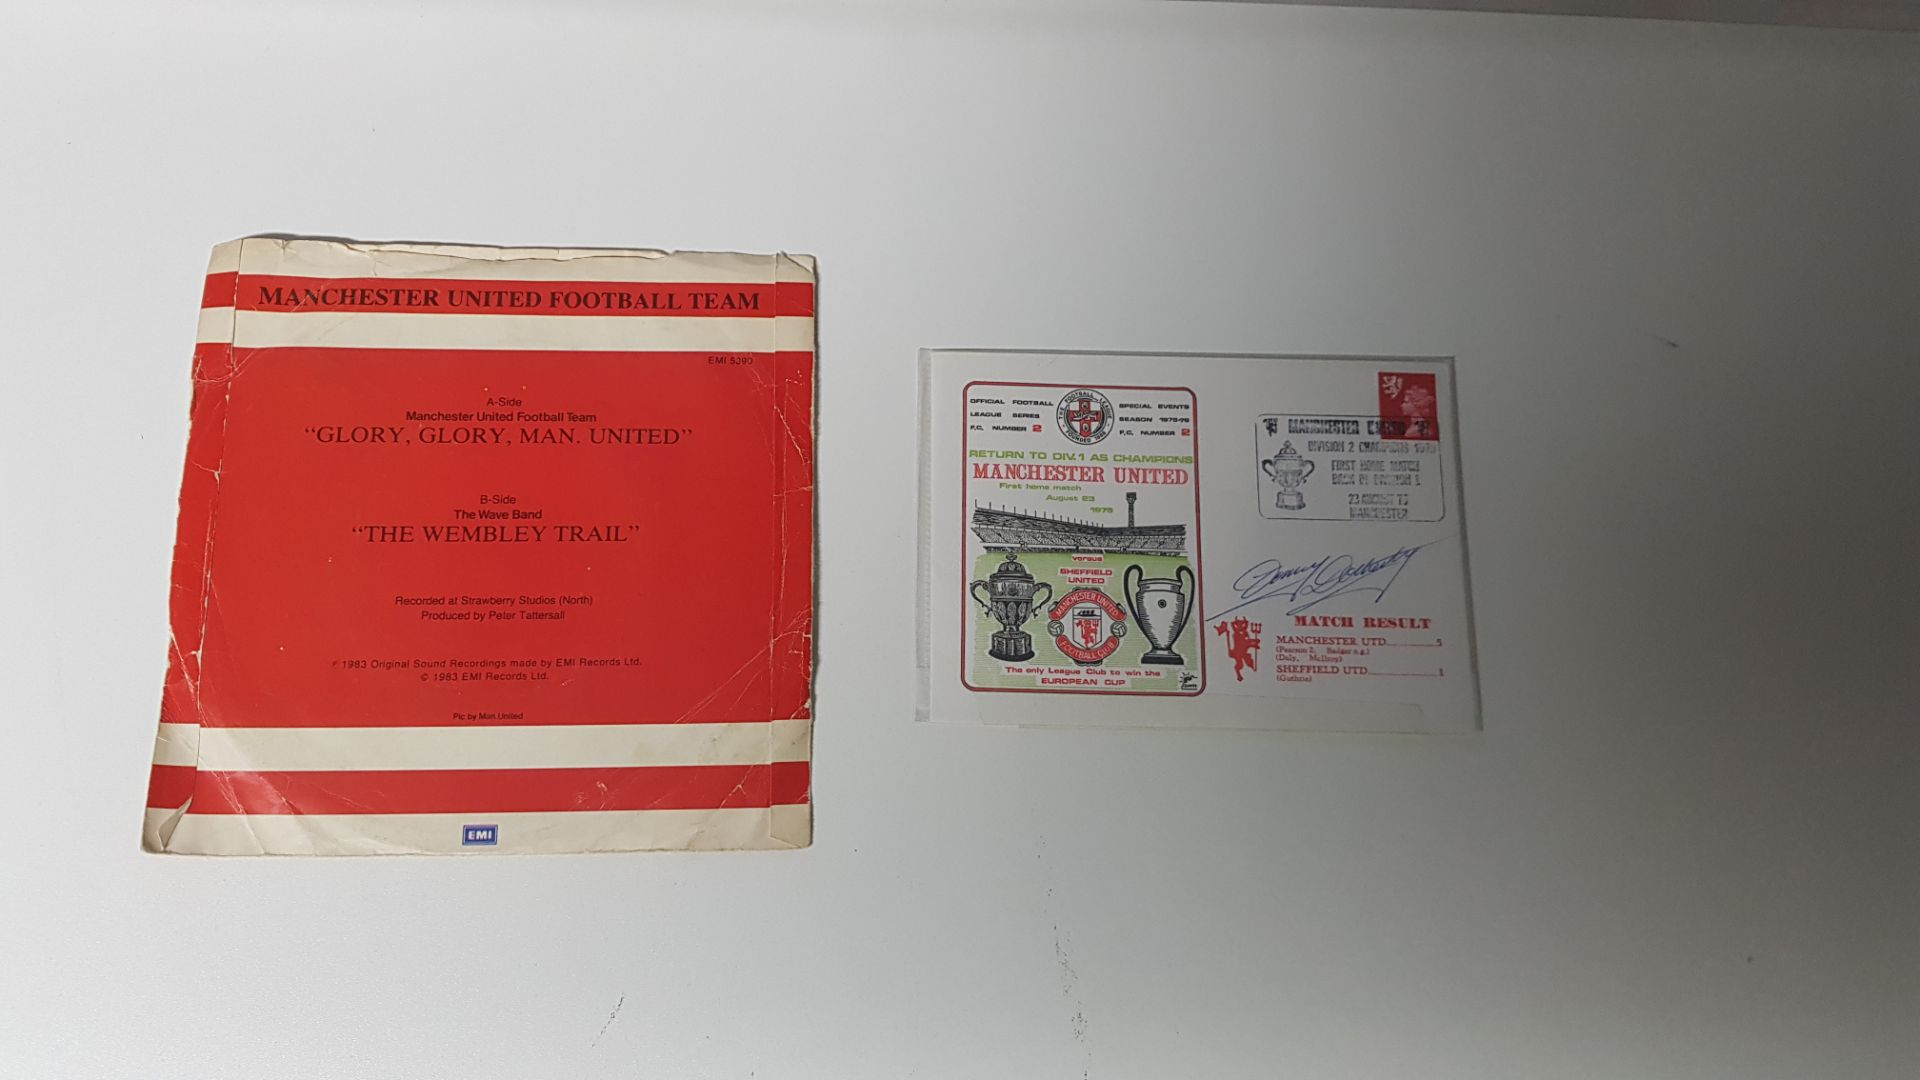 2 X ITEMS OF MANCHESTER UNITED MEMORABILIA TO INCLUDE - A MANCHESTER UNITED DIVISION 2 CHAMPIONS - Image 2 of 2